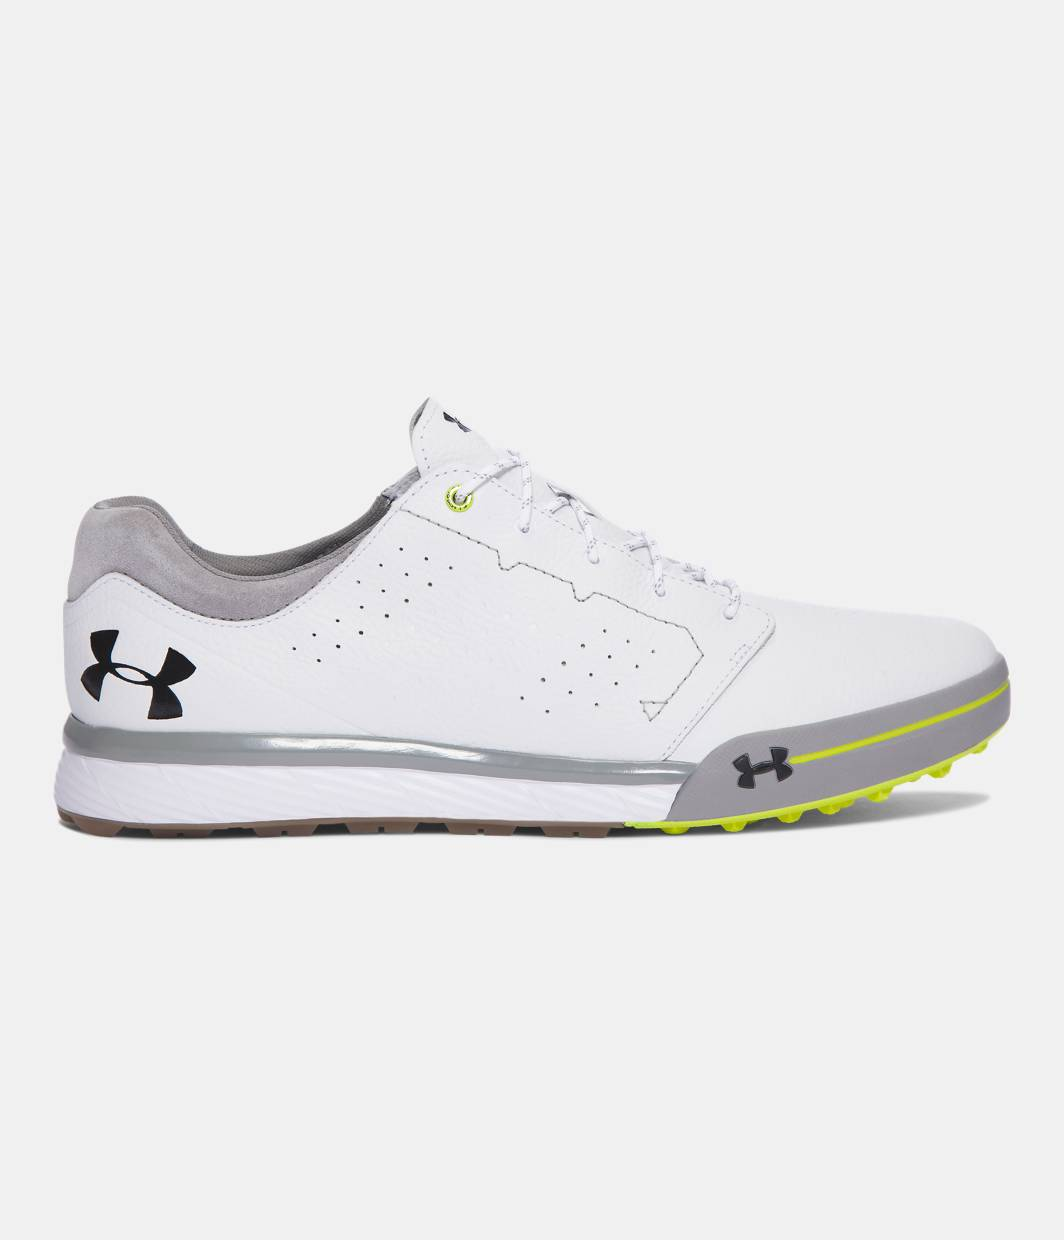 Under Armour Womens Tempo Hybrid Golf Shoes